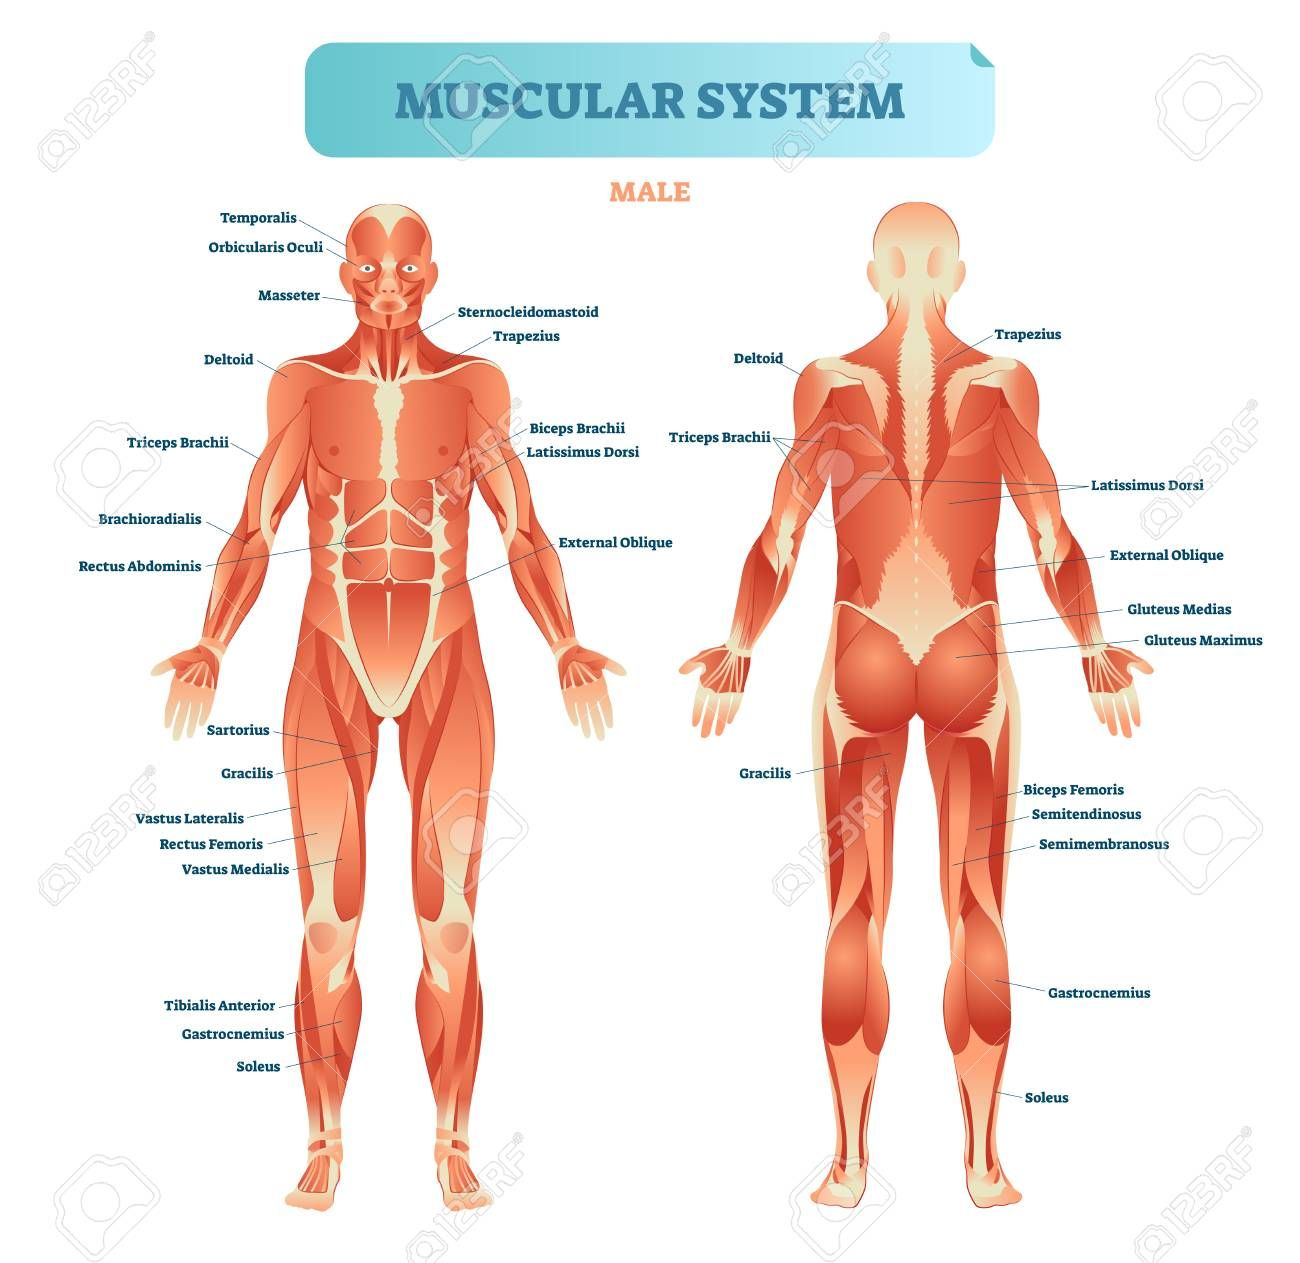 A Diagram Of The Muscular System Human Anatomy Pictures